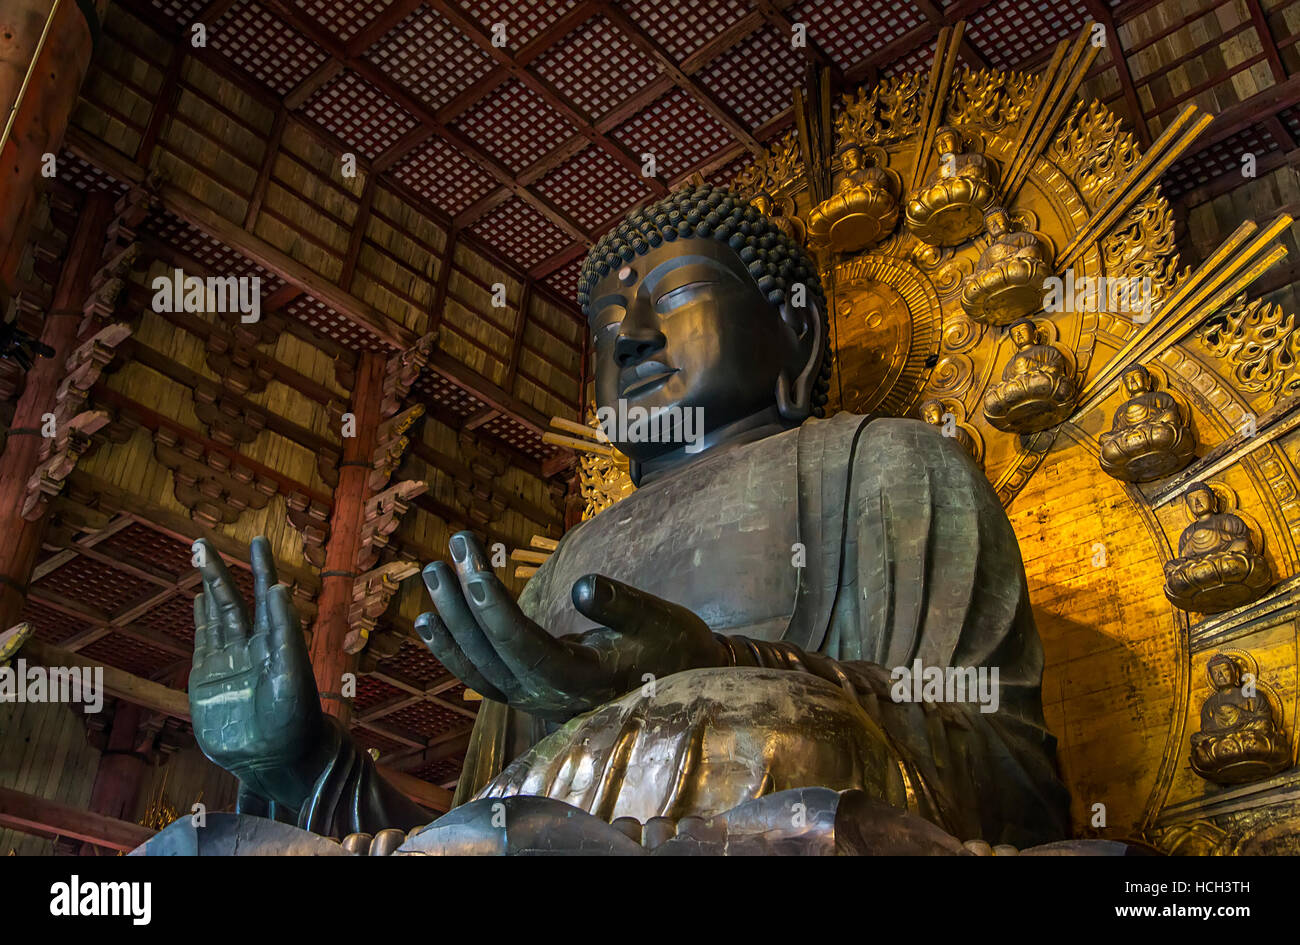 Detail from the Todaiji temple in Nara, Japan - Stock Image